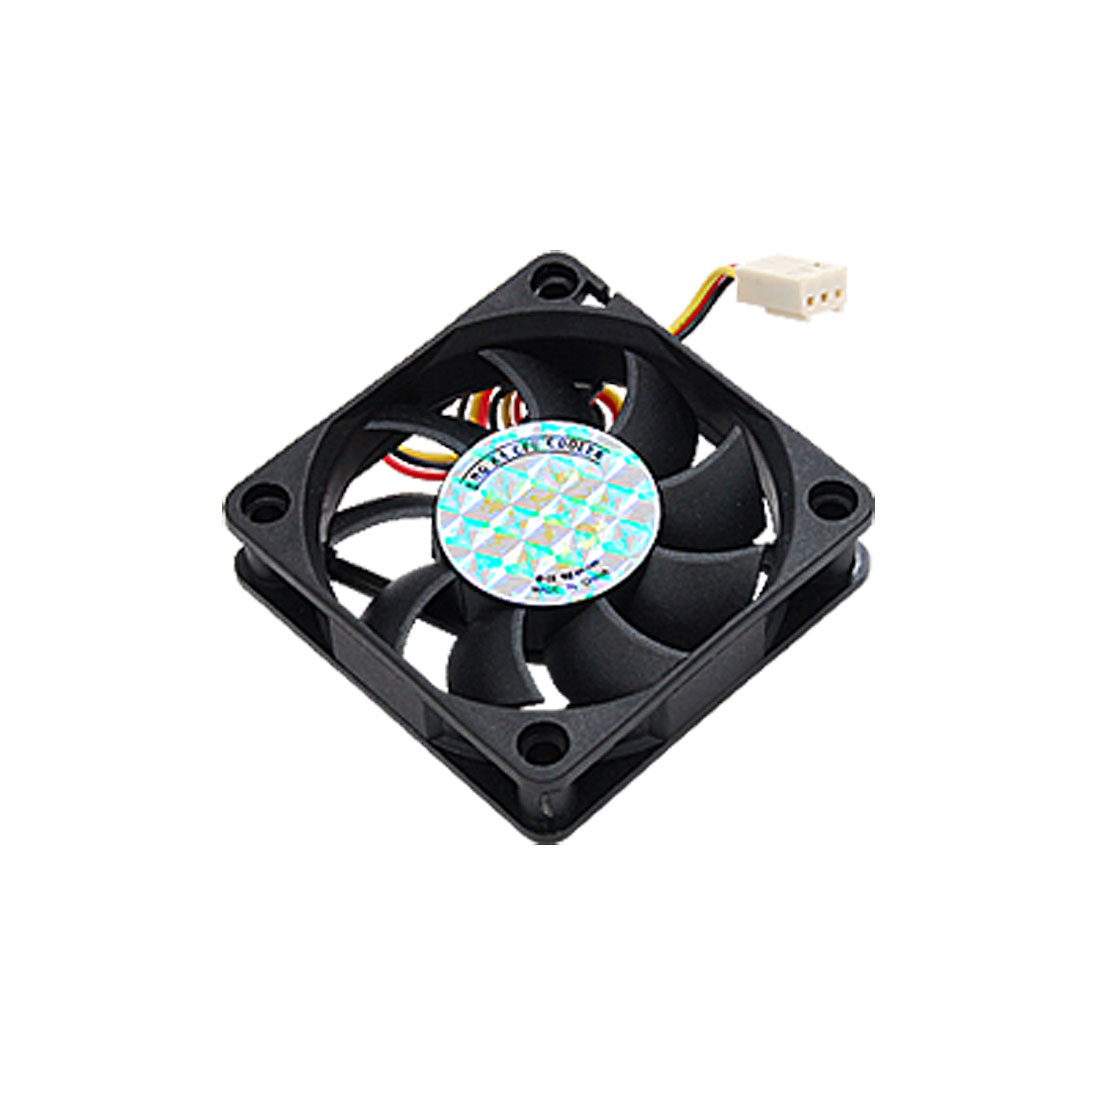 New 70mm PC Chassis Computer Case 3 Terminal Fan Cooling Cooler